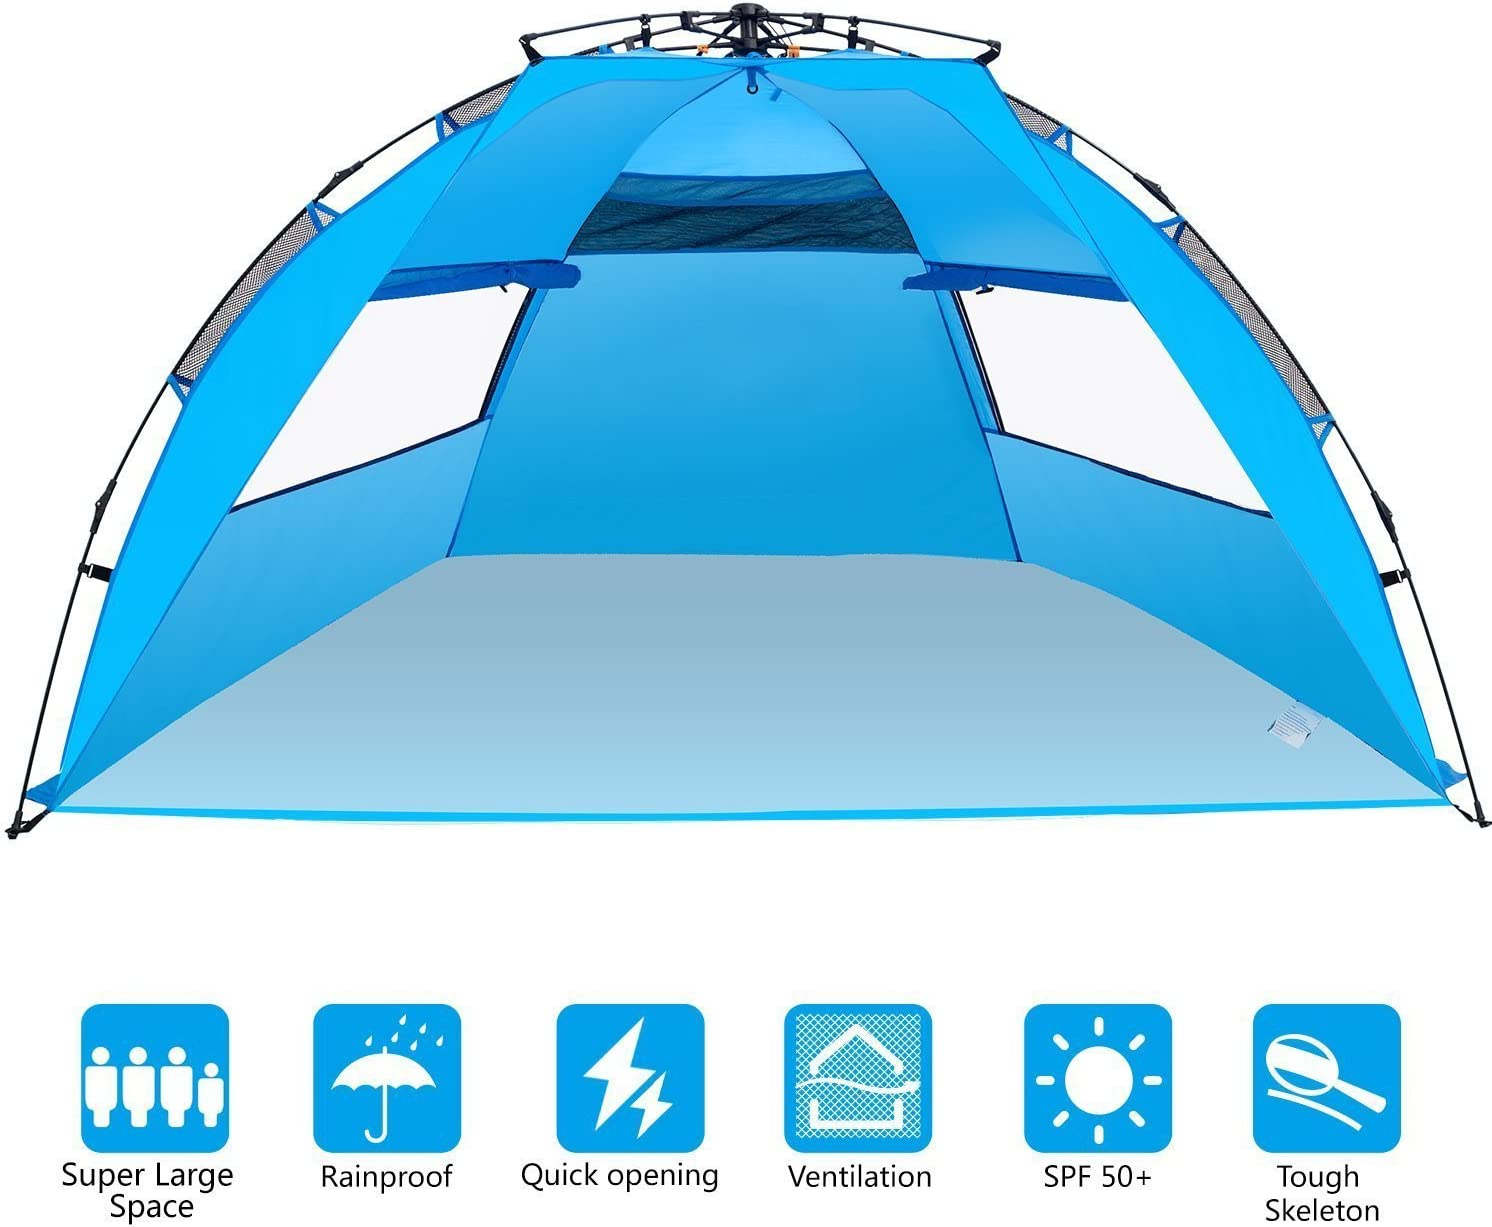 Elover Instant Beach Tent Pop Up Easy Up Sun Shelter Anti UV Beach Shelter for 4 Person Outdoor Camping Fishing Hiking BBQ